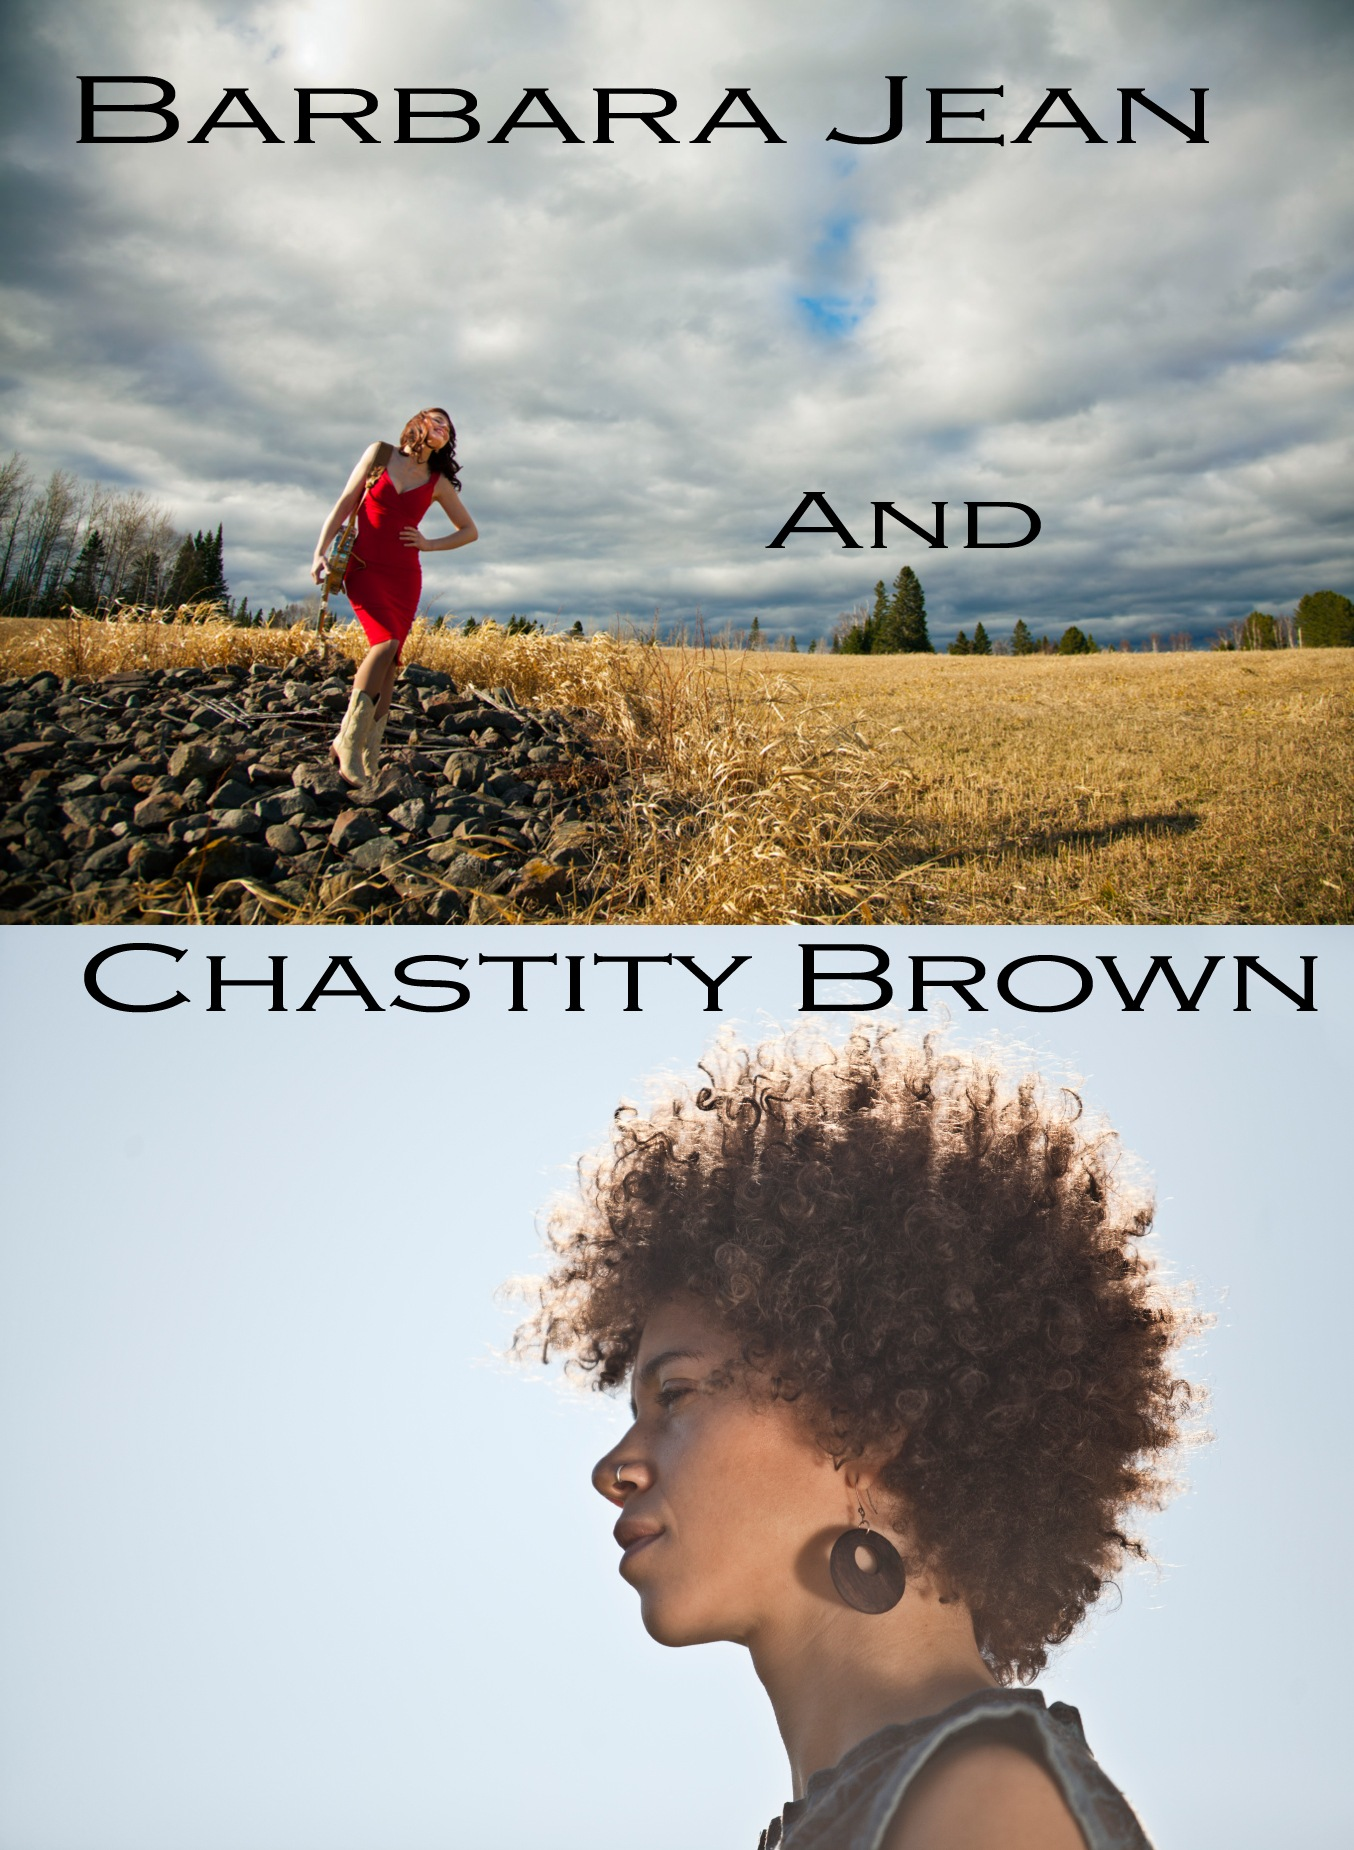 Barbara Jean & Chastity Brown March 2